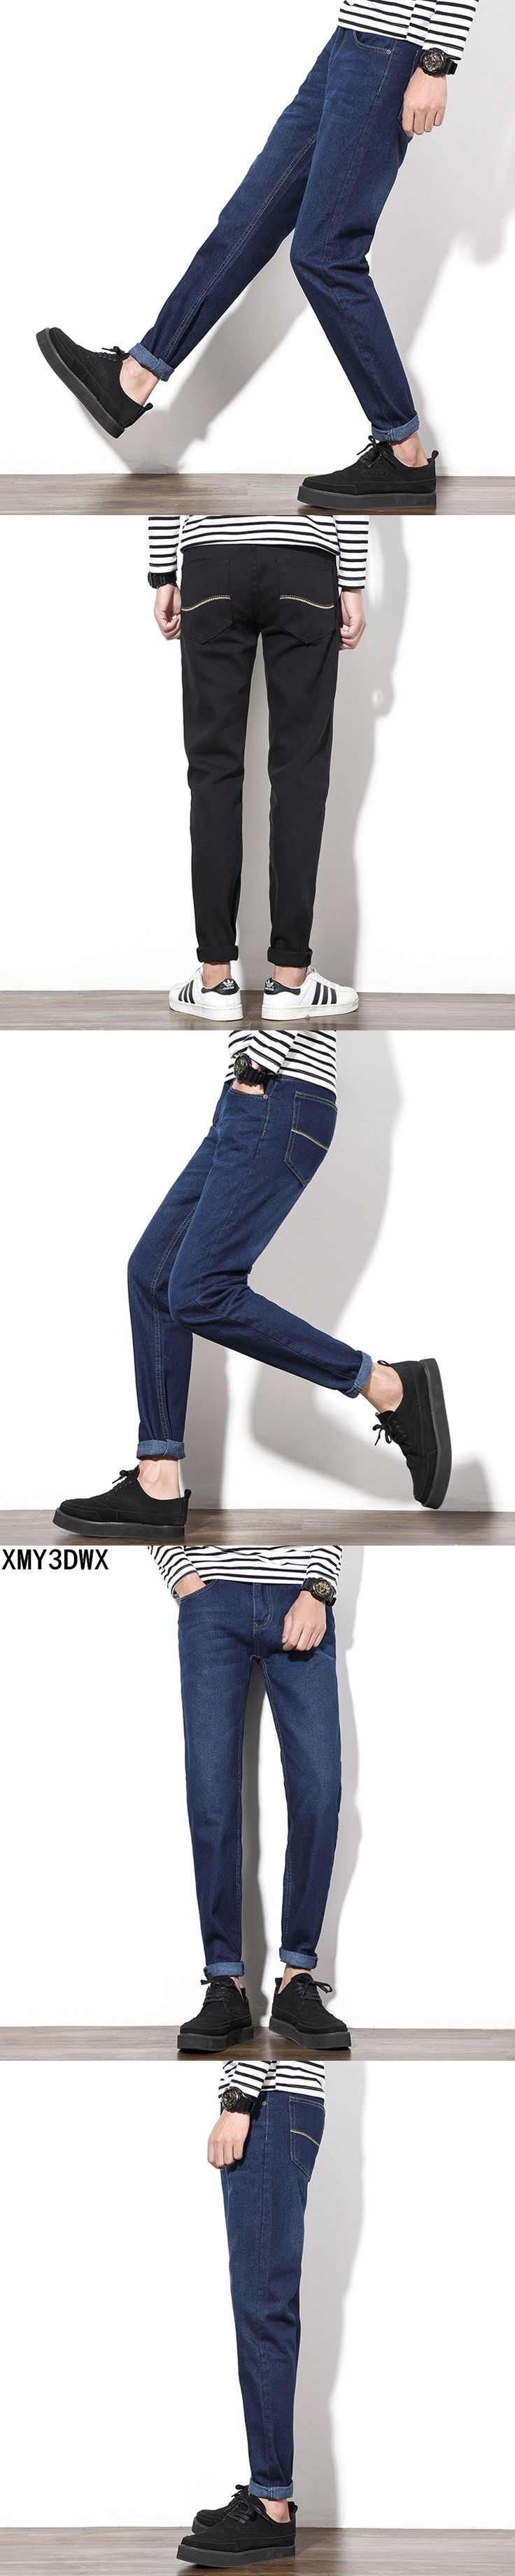 2017 New design mid waist jogger jeans masculino mens pants Washed Slim fit male Cotton Straight Long denim homme Trousers